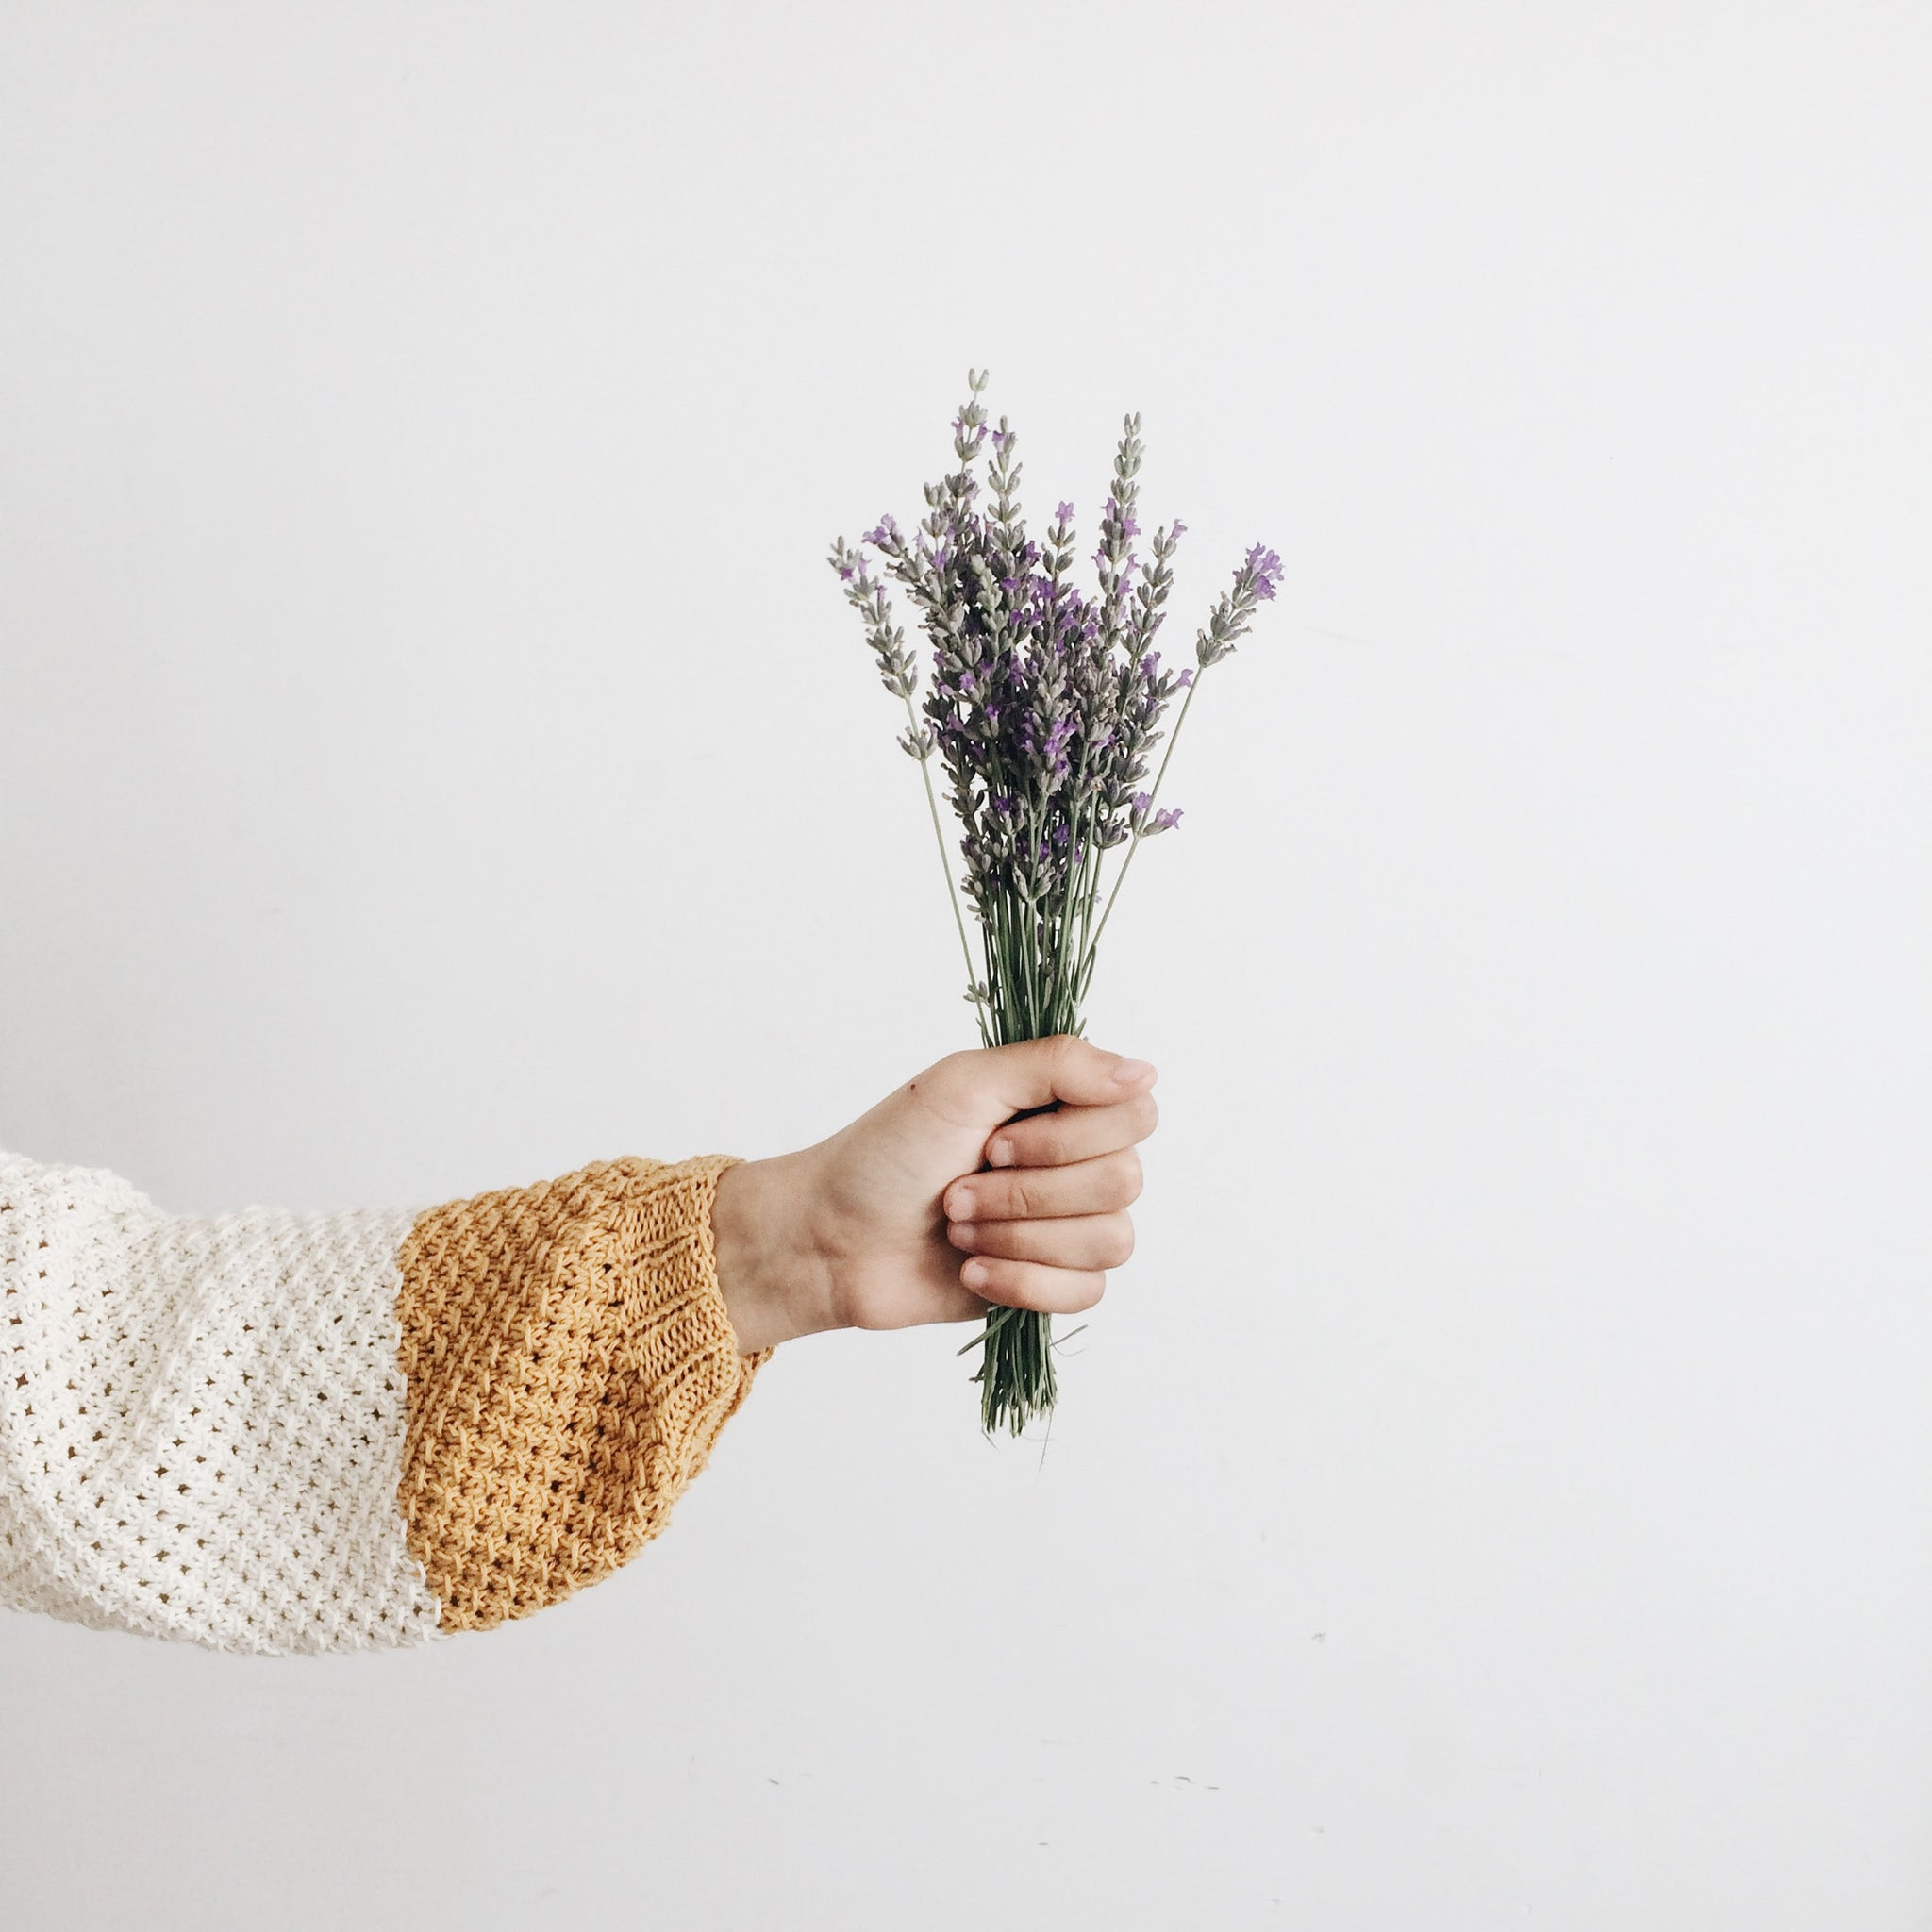 image of hand holding a bouquet of lavender.